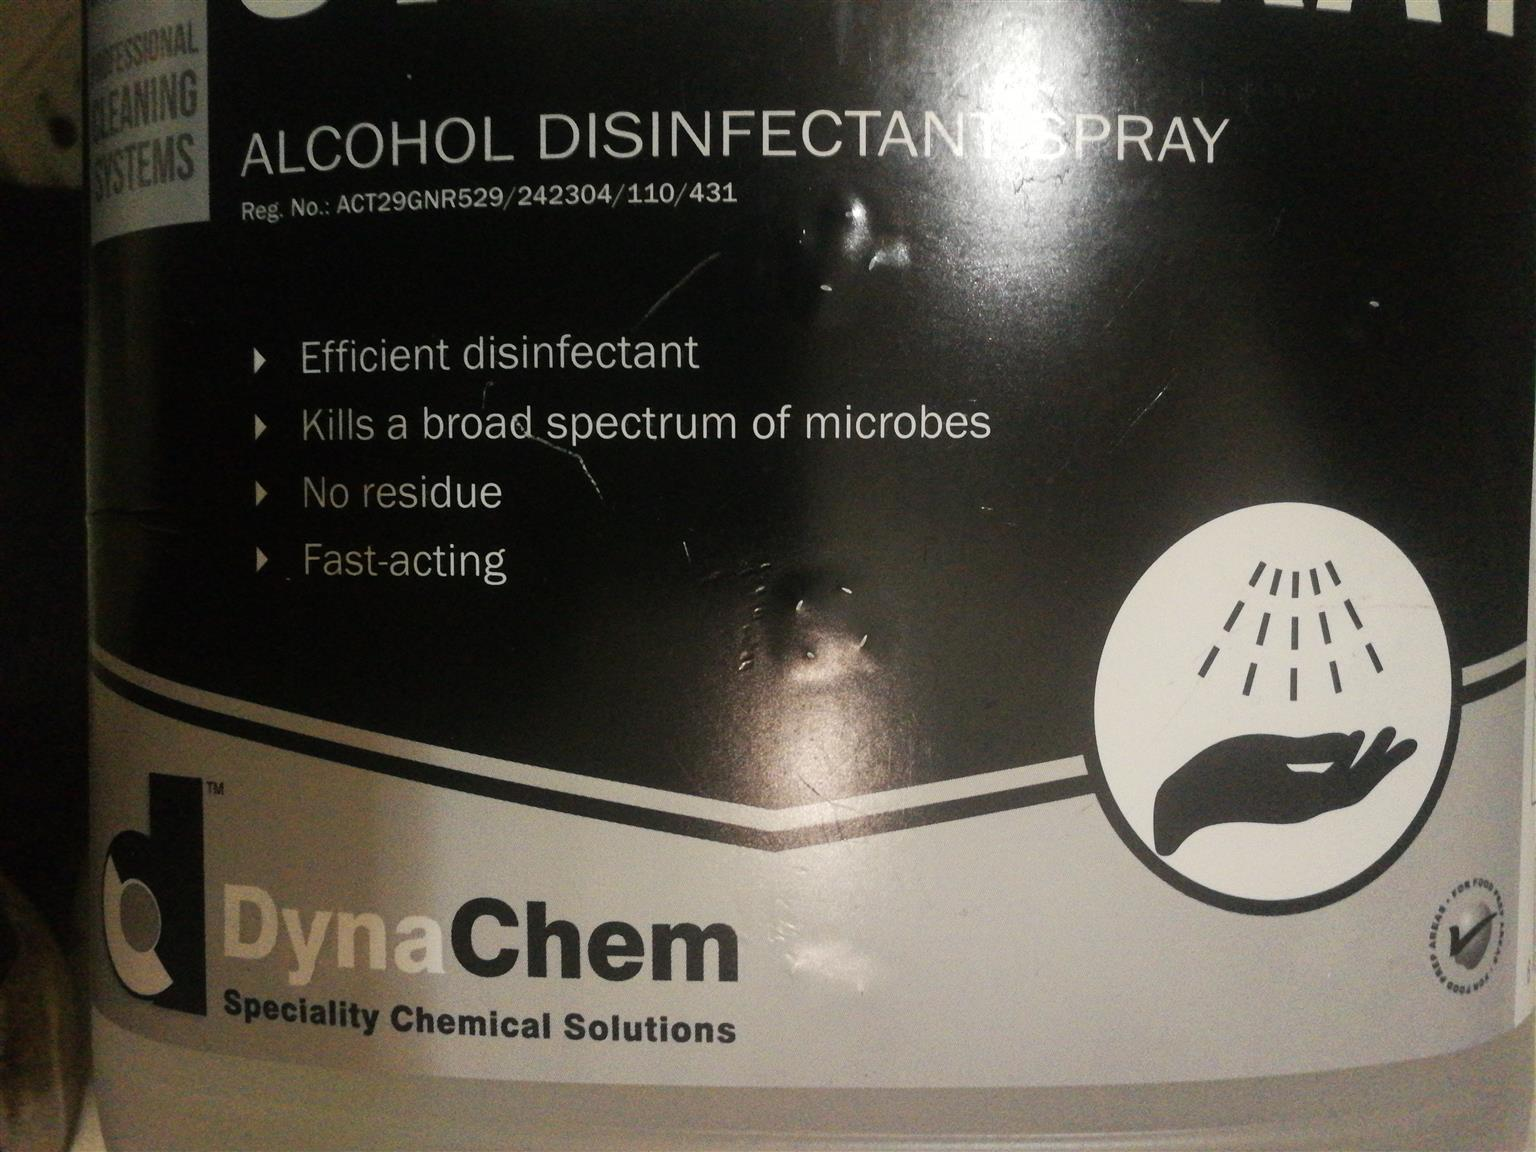 Air fogging/fumigation canisters and disinfectant spray